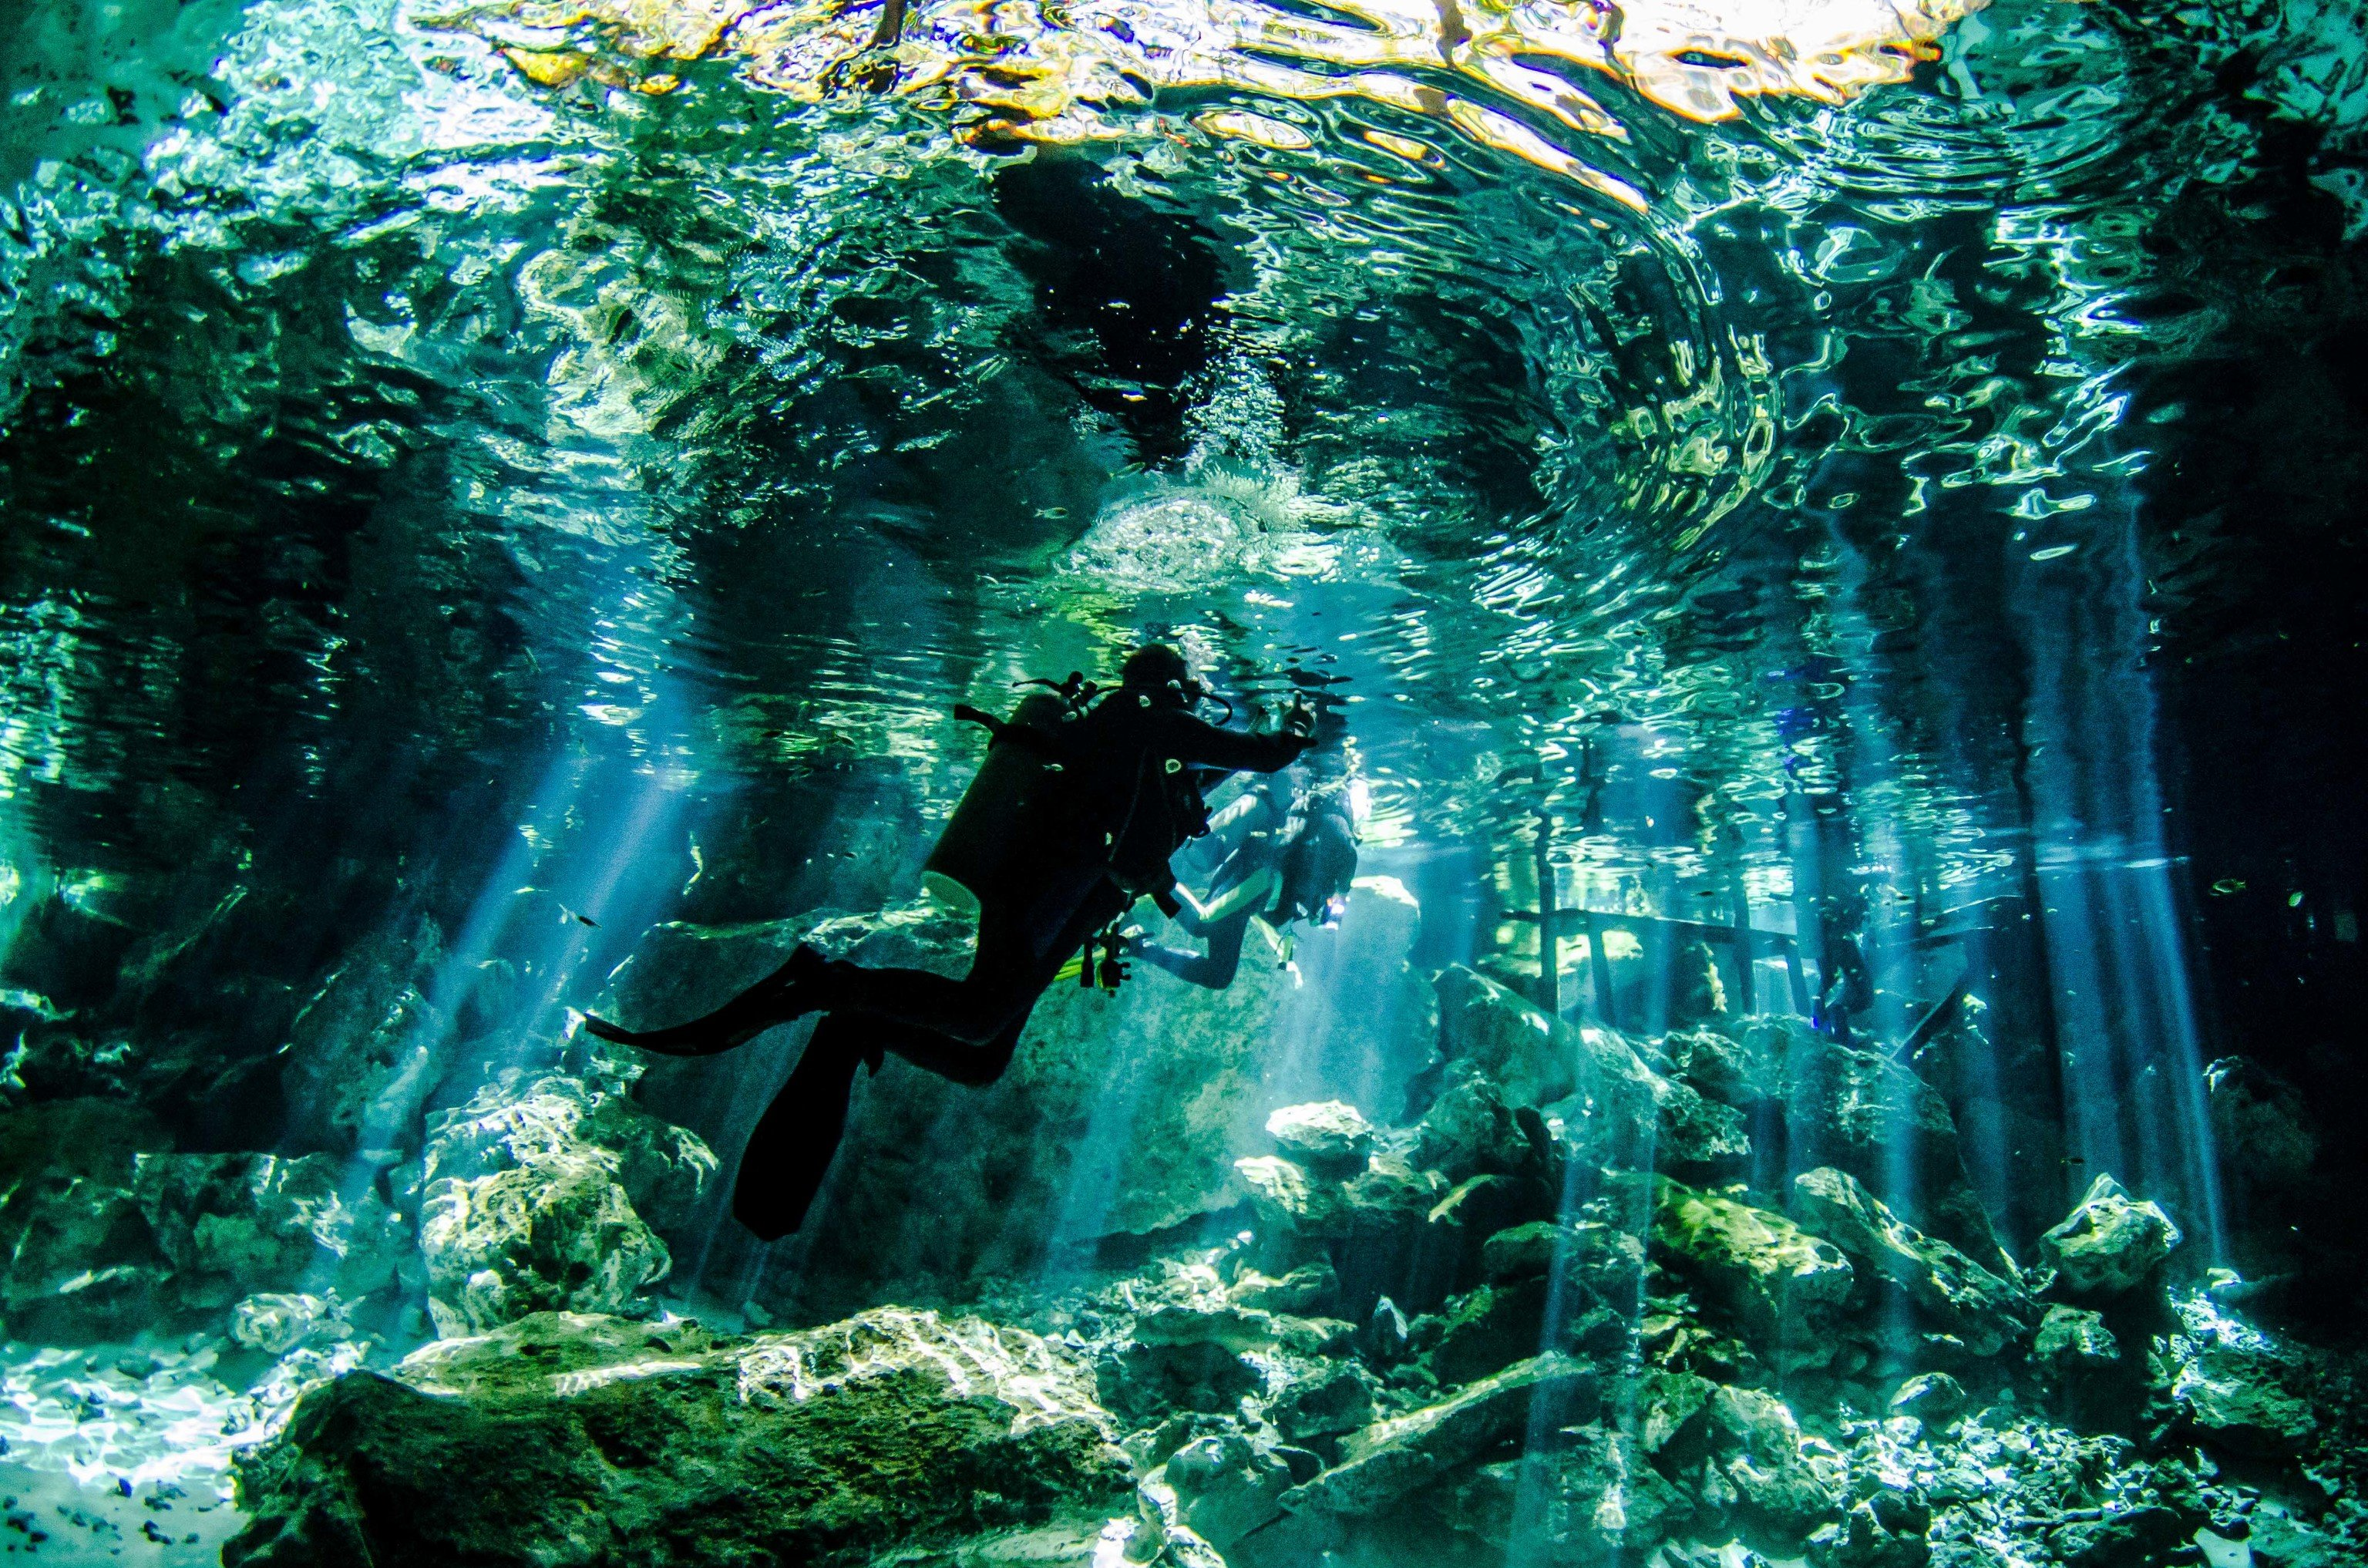 Hotels Trip Ideas Nature green ecosystem underwater Forest rock tree marine biology coral reef organism underwater diving Jungle reef old growth forest Scuba Diving surrounded